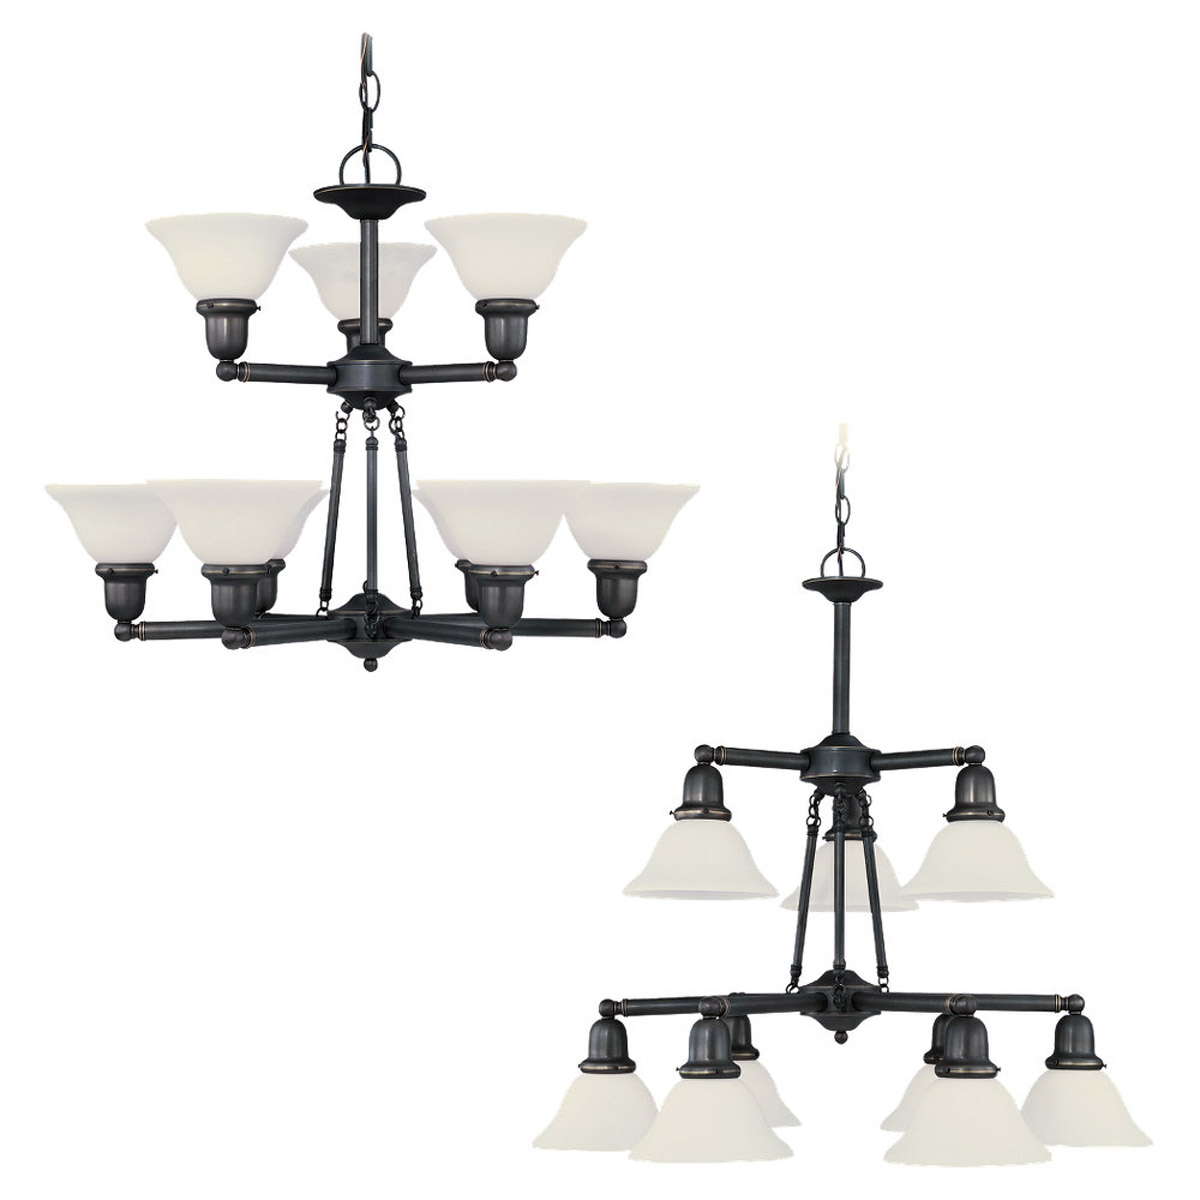 Sea Gull Lighting Sussex 9 Light Chandelier in Heirloom Bronze 31062-782 photo